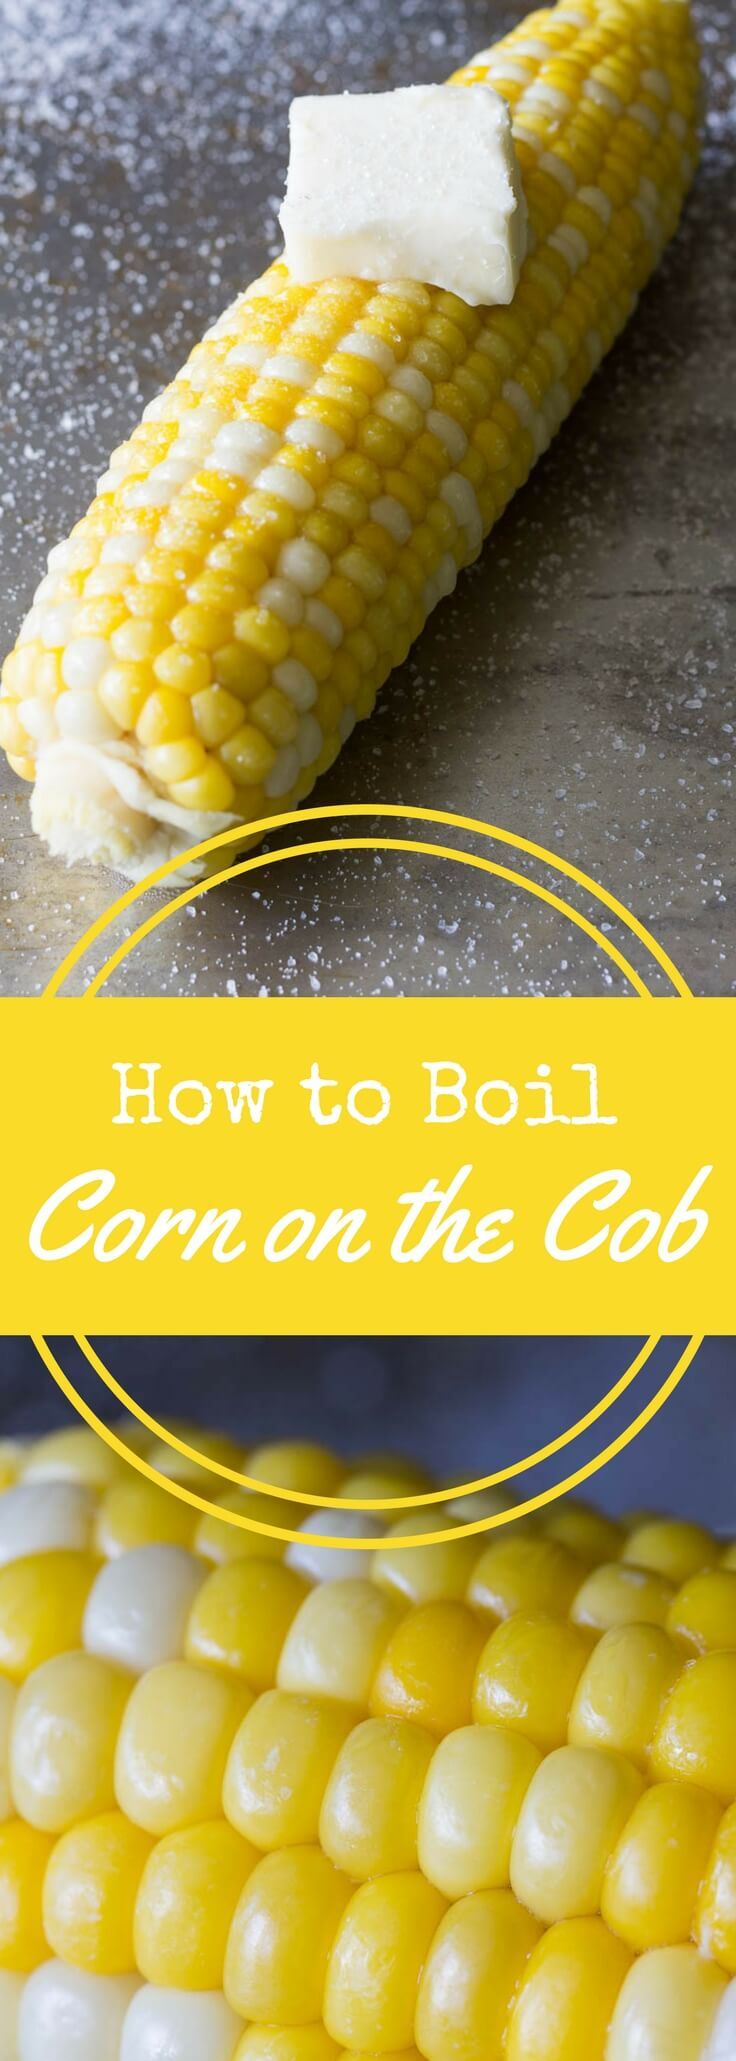 How to Boil Corn on the Cob • Recipe for Perfection